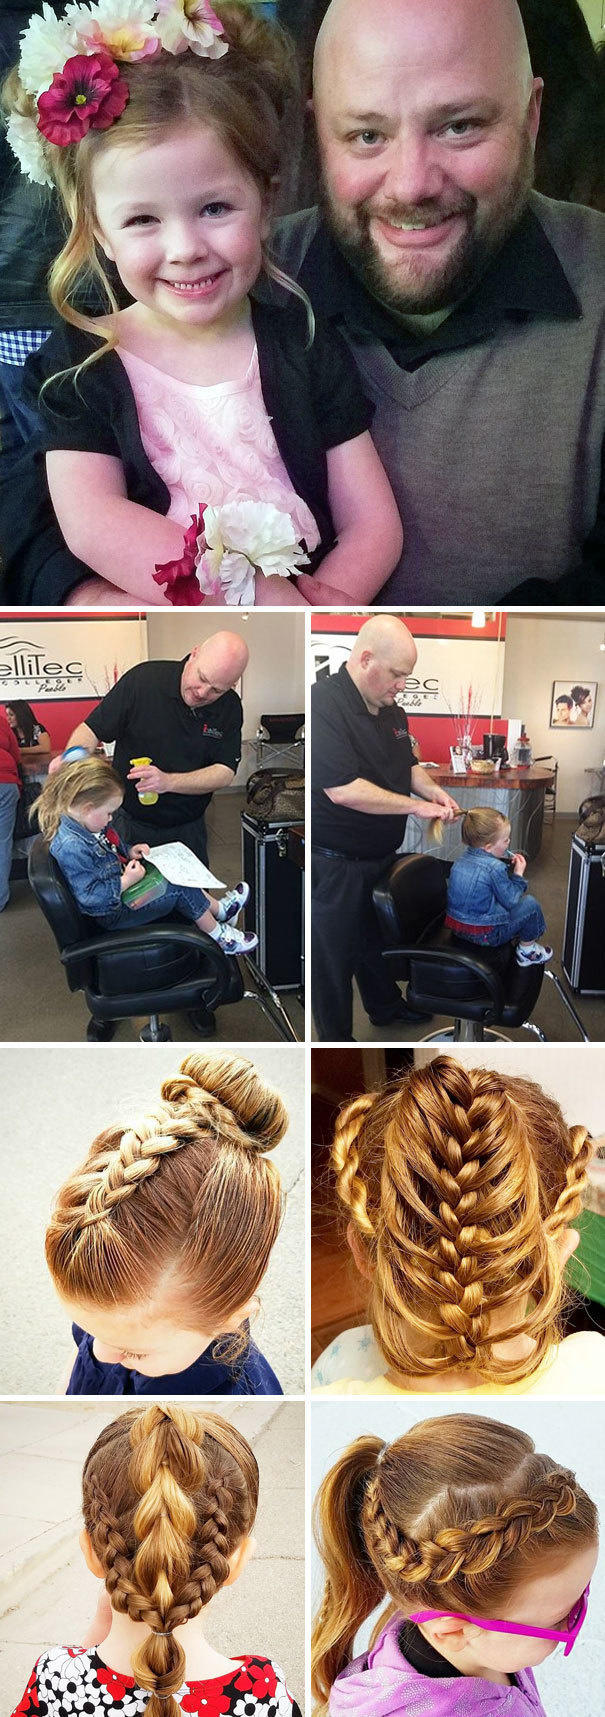 A single dad who couldn't do his daughter's hair.